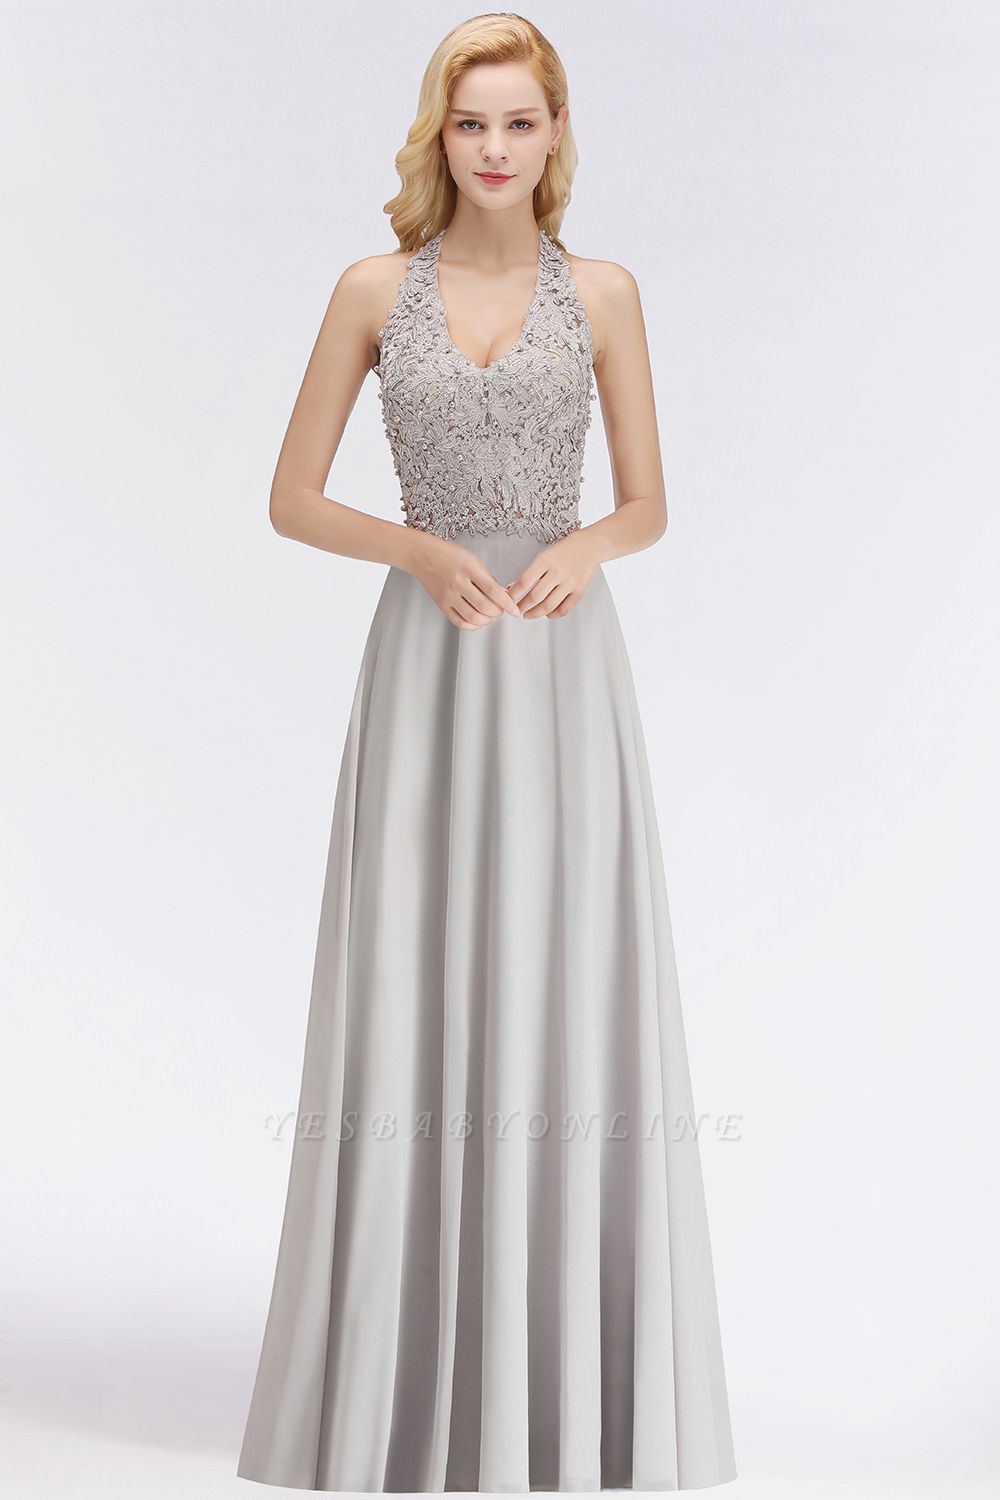 Elegant Halter A-line Appliques Chiffon Long Bridesmaid Dresses | Simple Wedding Guest Dresses